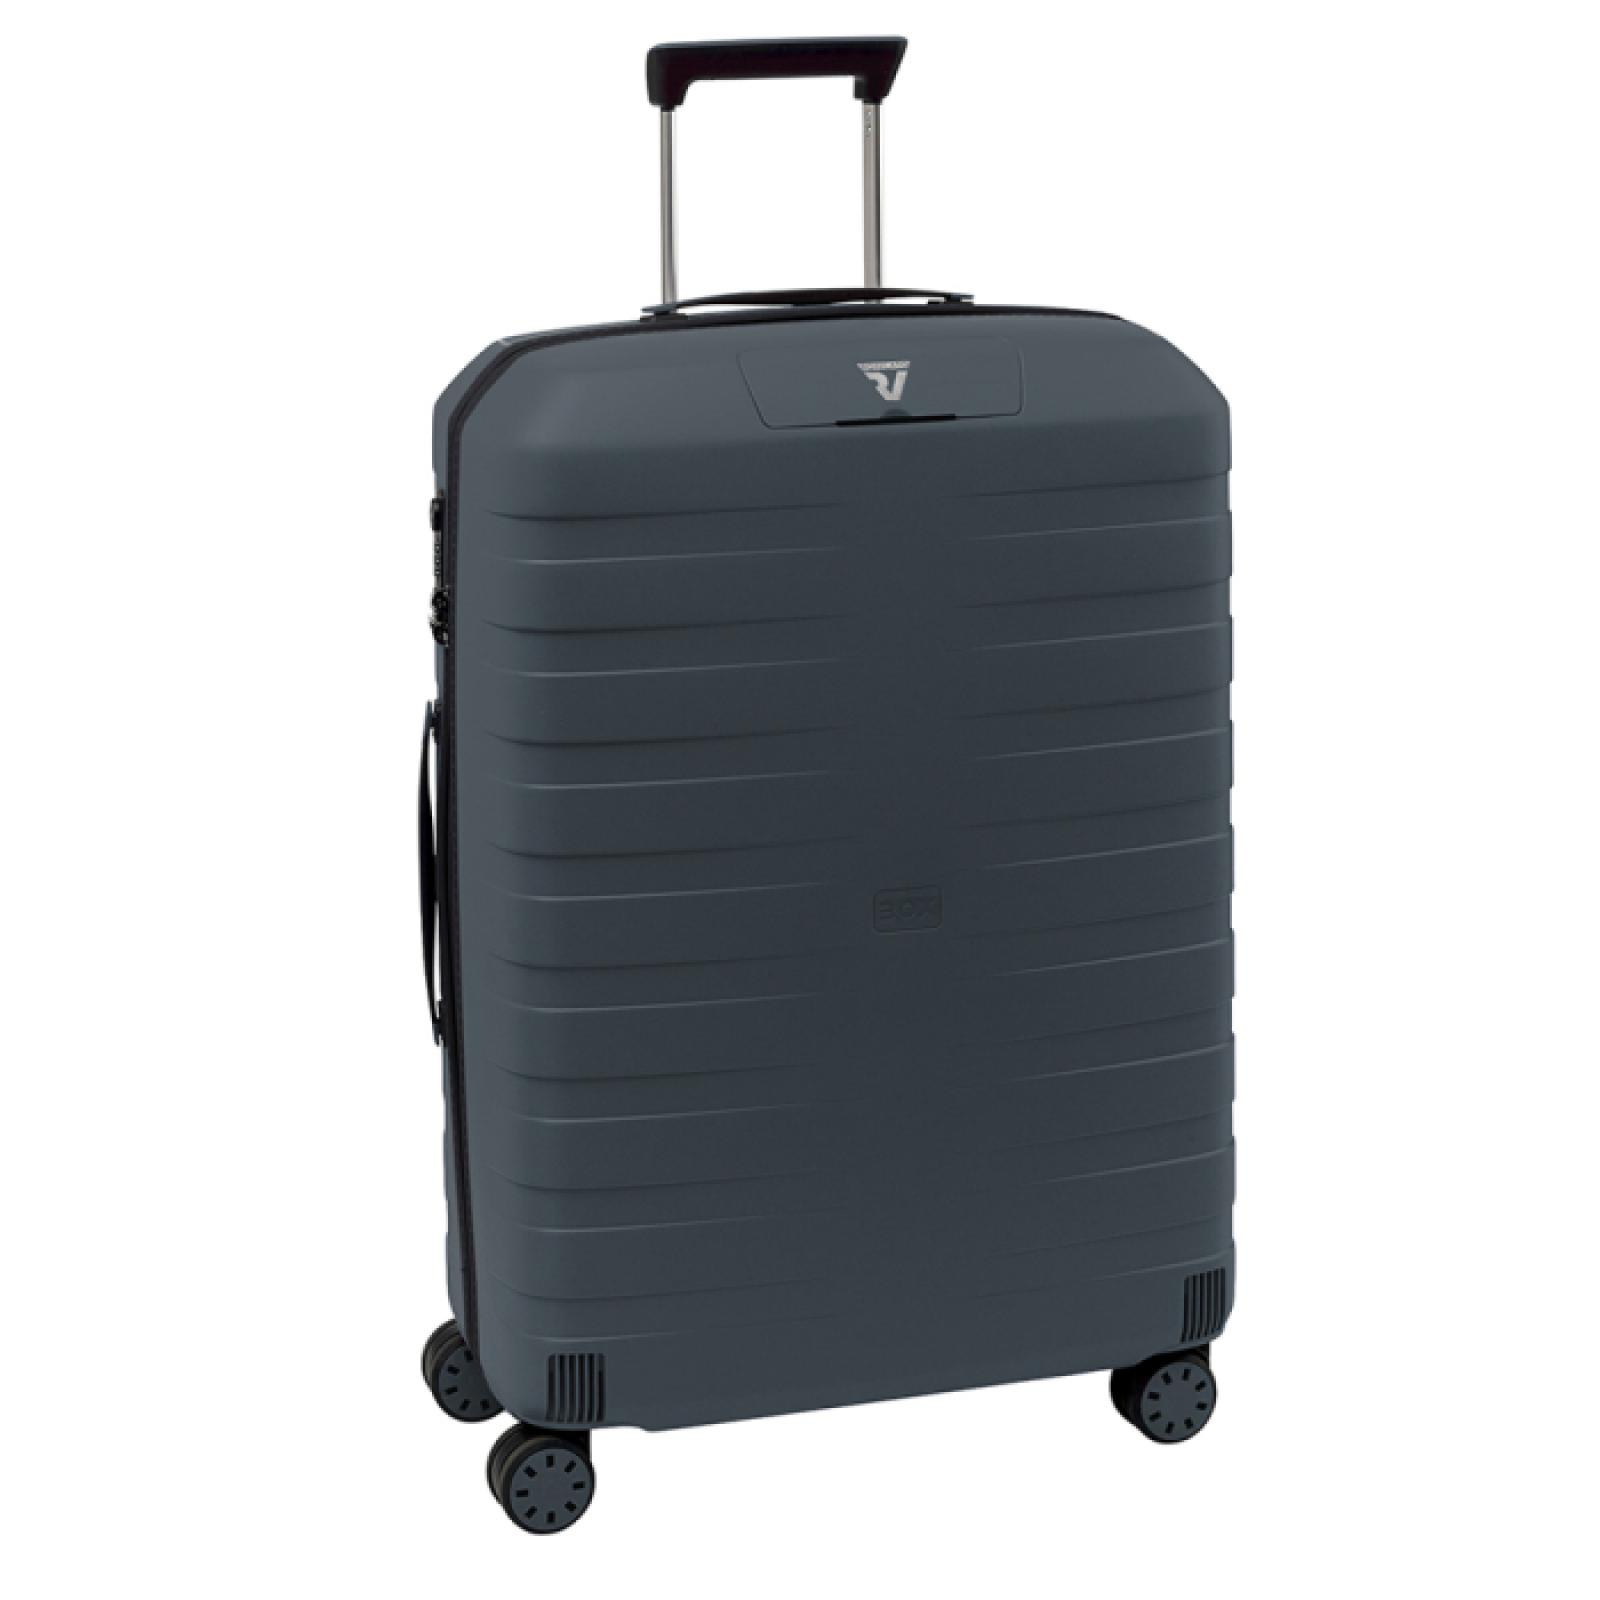 Trolley Medium Box 2.0 Spinner 69 cm-ANTRACIT-UN